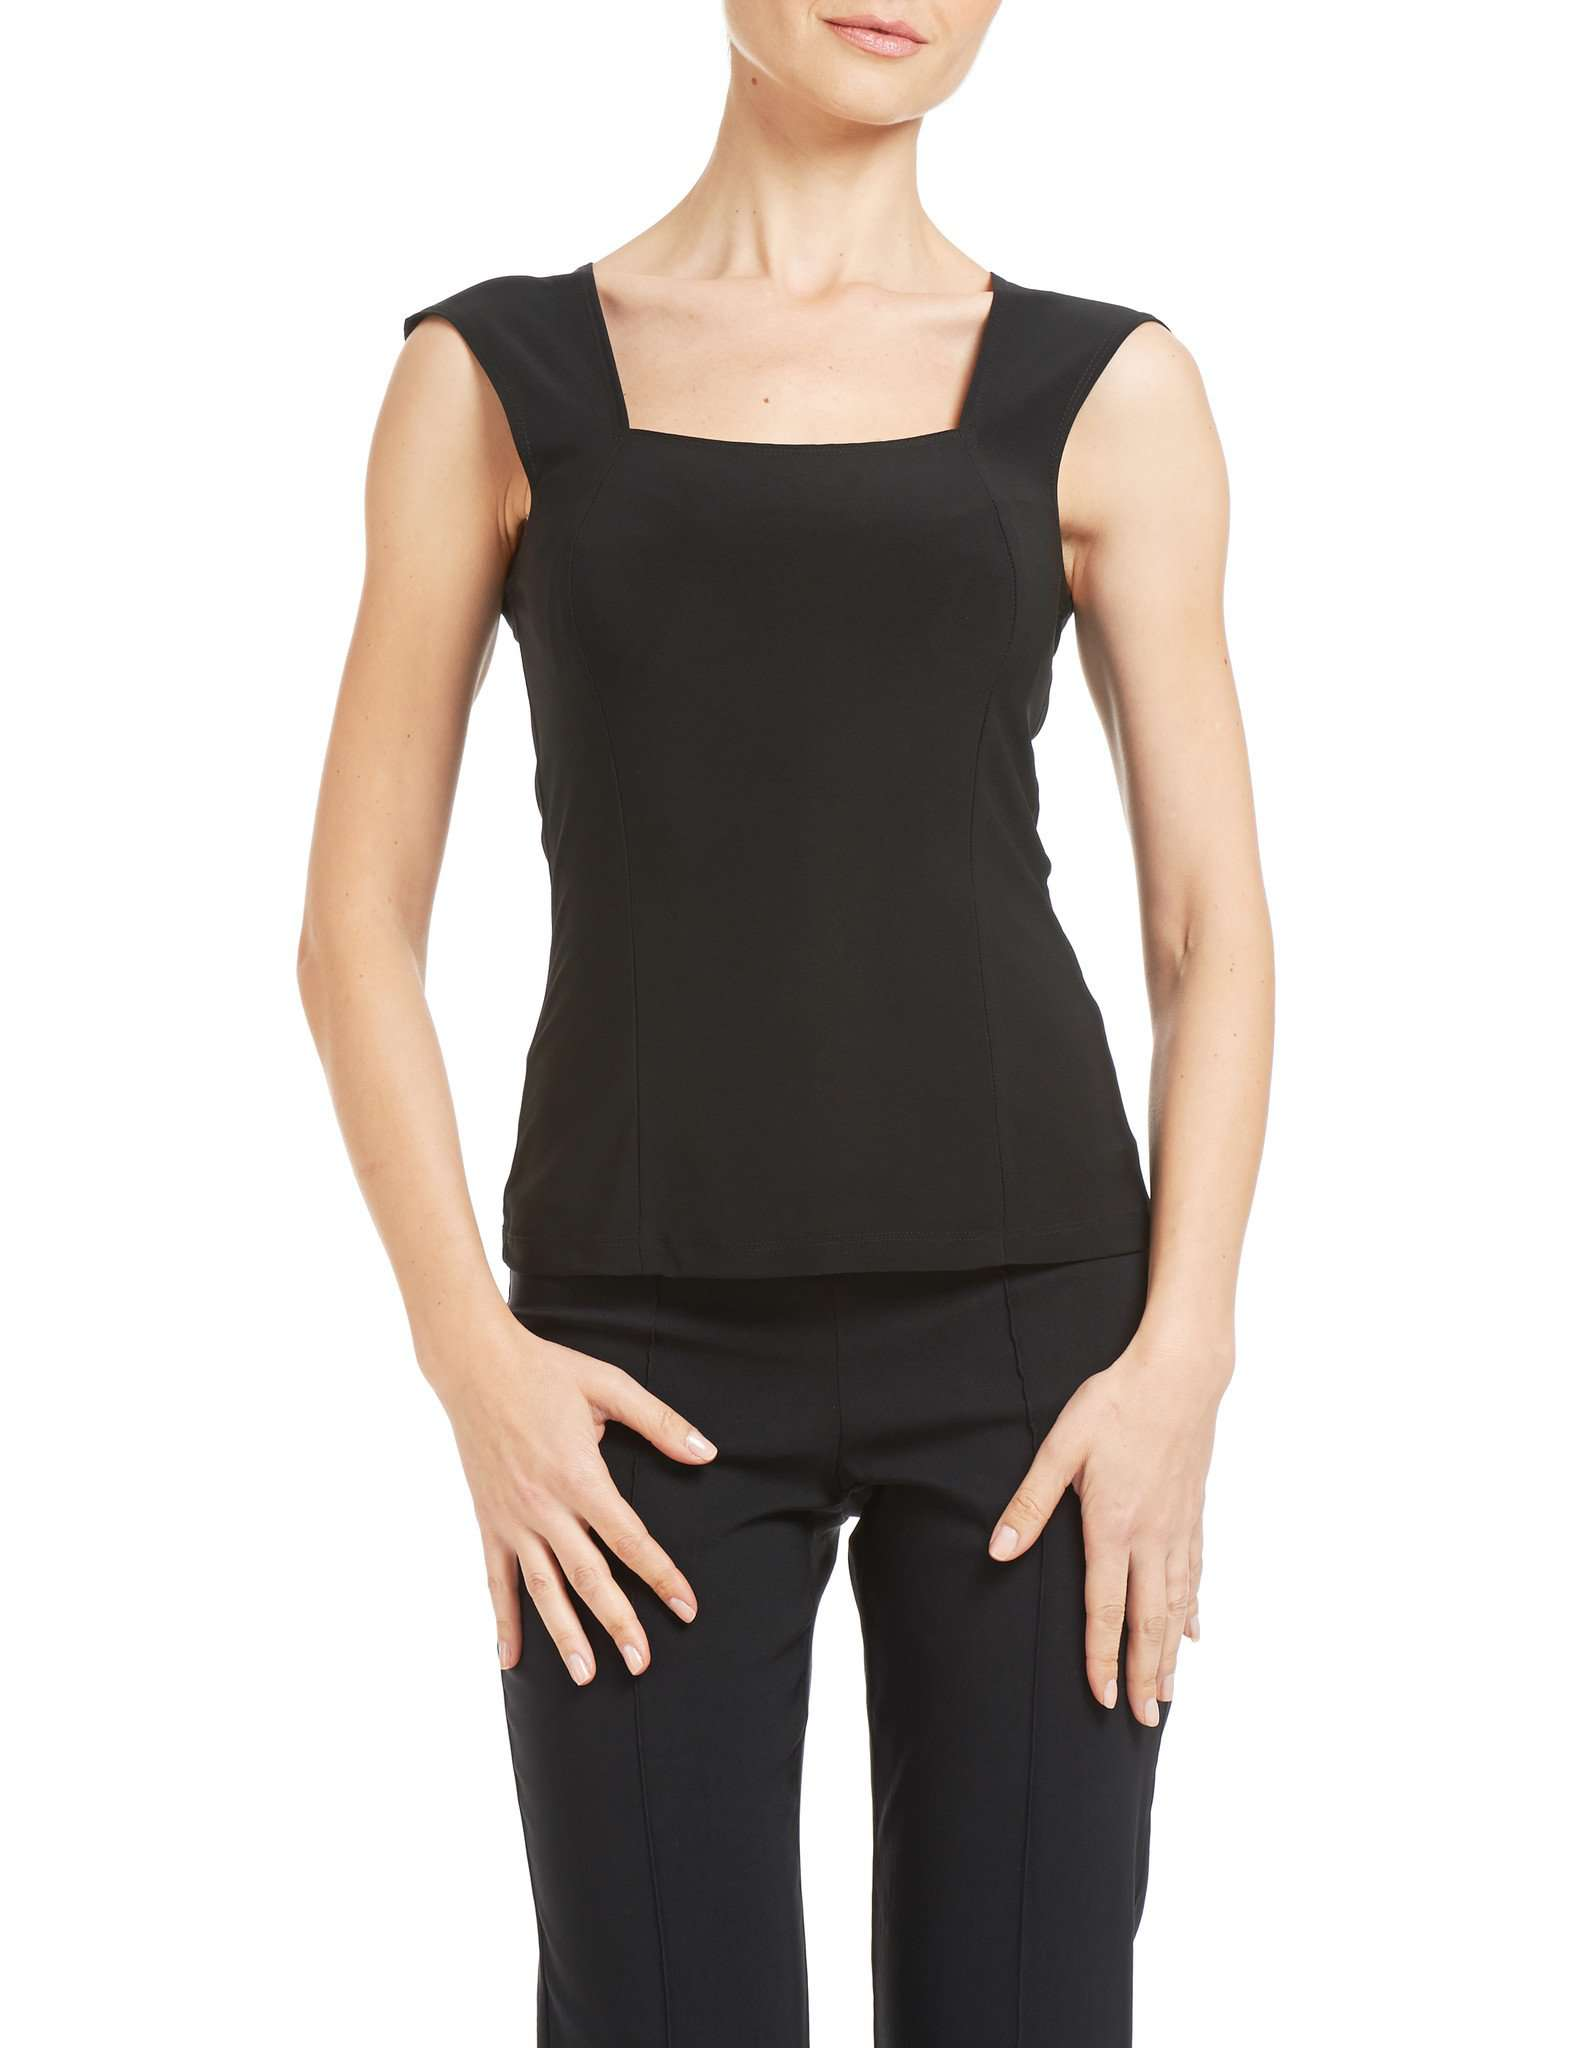 Black Camisole with Square Neckline Essential Wardrobe Top - Yvonne Marie